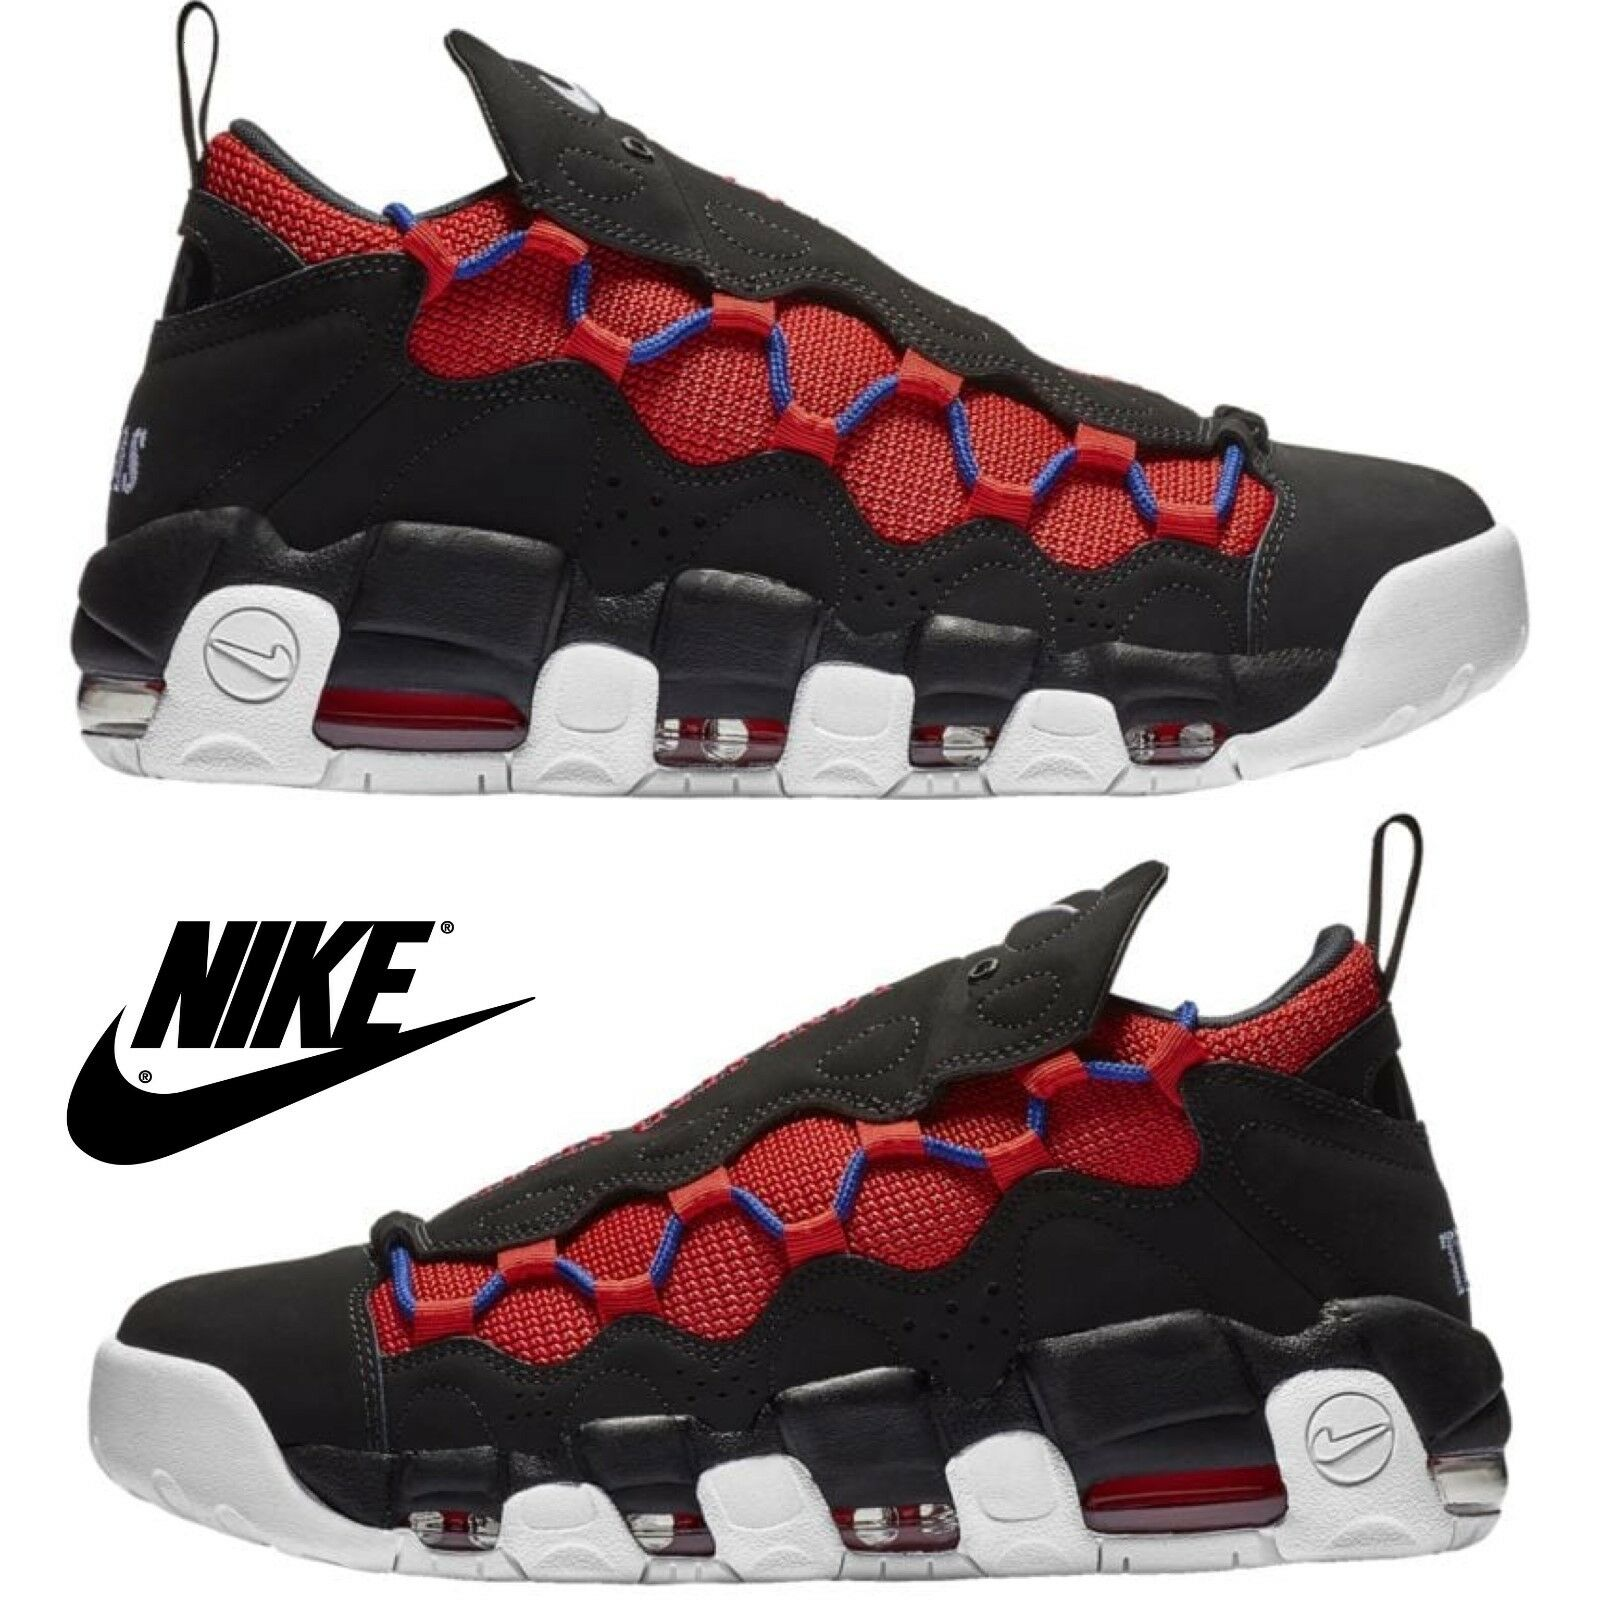 957f6598d25 Air More Money Men's Sneakers Training Running Gym Casual Sport shoes NIB  Nike nomwoe3383-Athletic Shoes